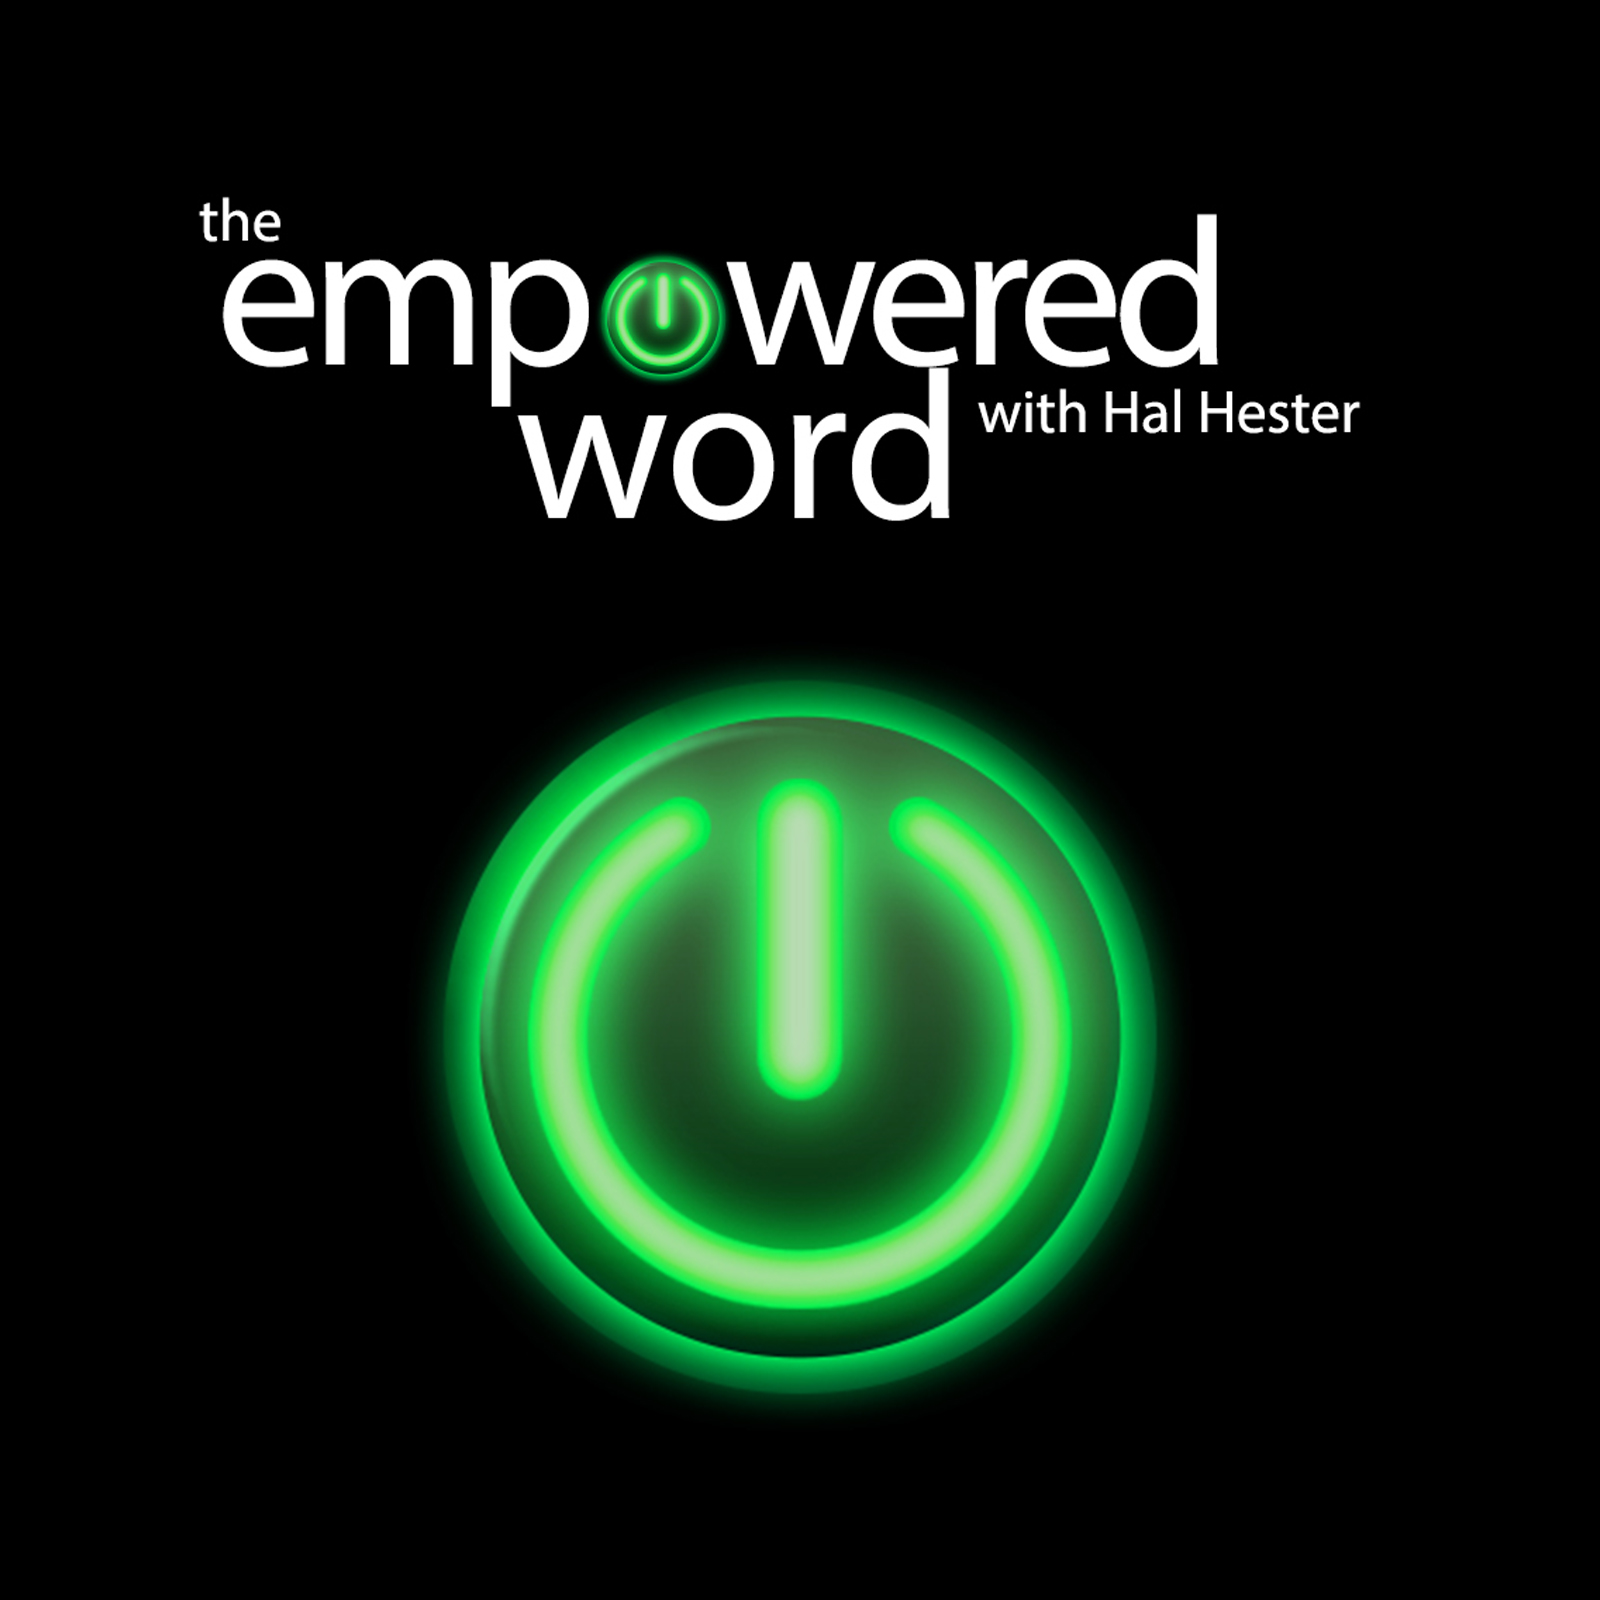 The Empowered Word with Hal Hester